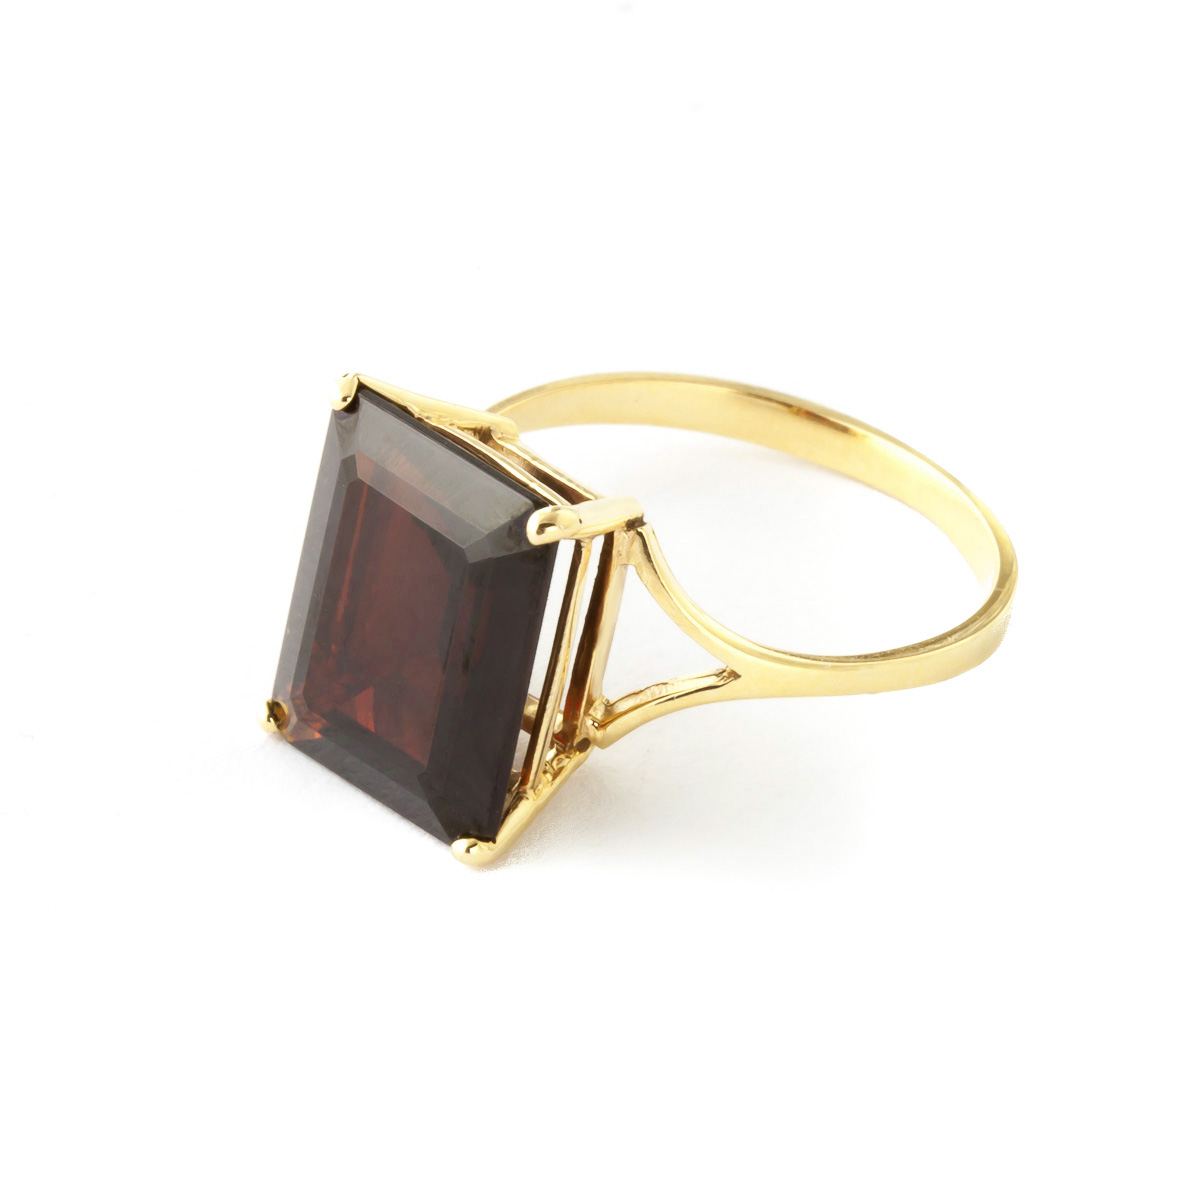 Garnet Ring 7.0ct in 9ct Gold